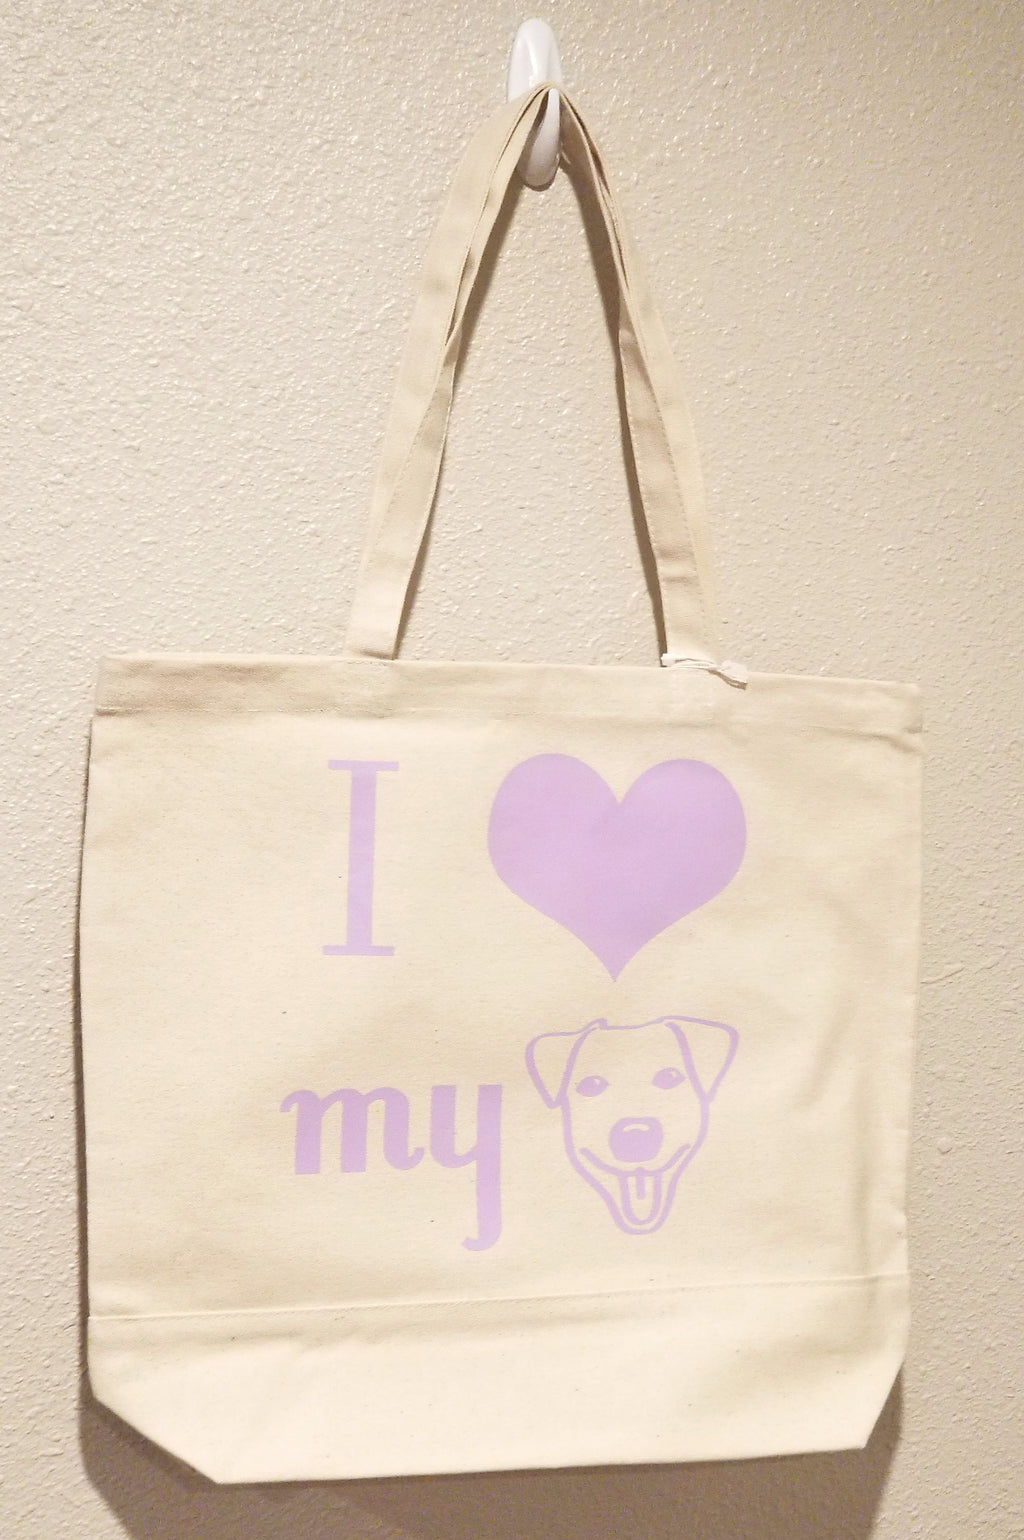 I Love My Dog - Lilac Tote Bag